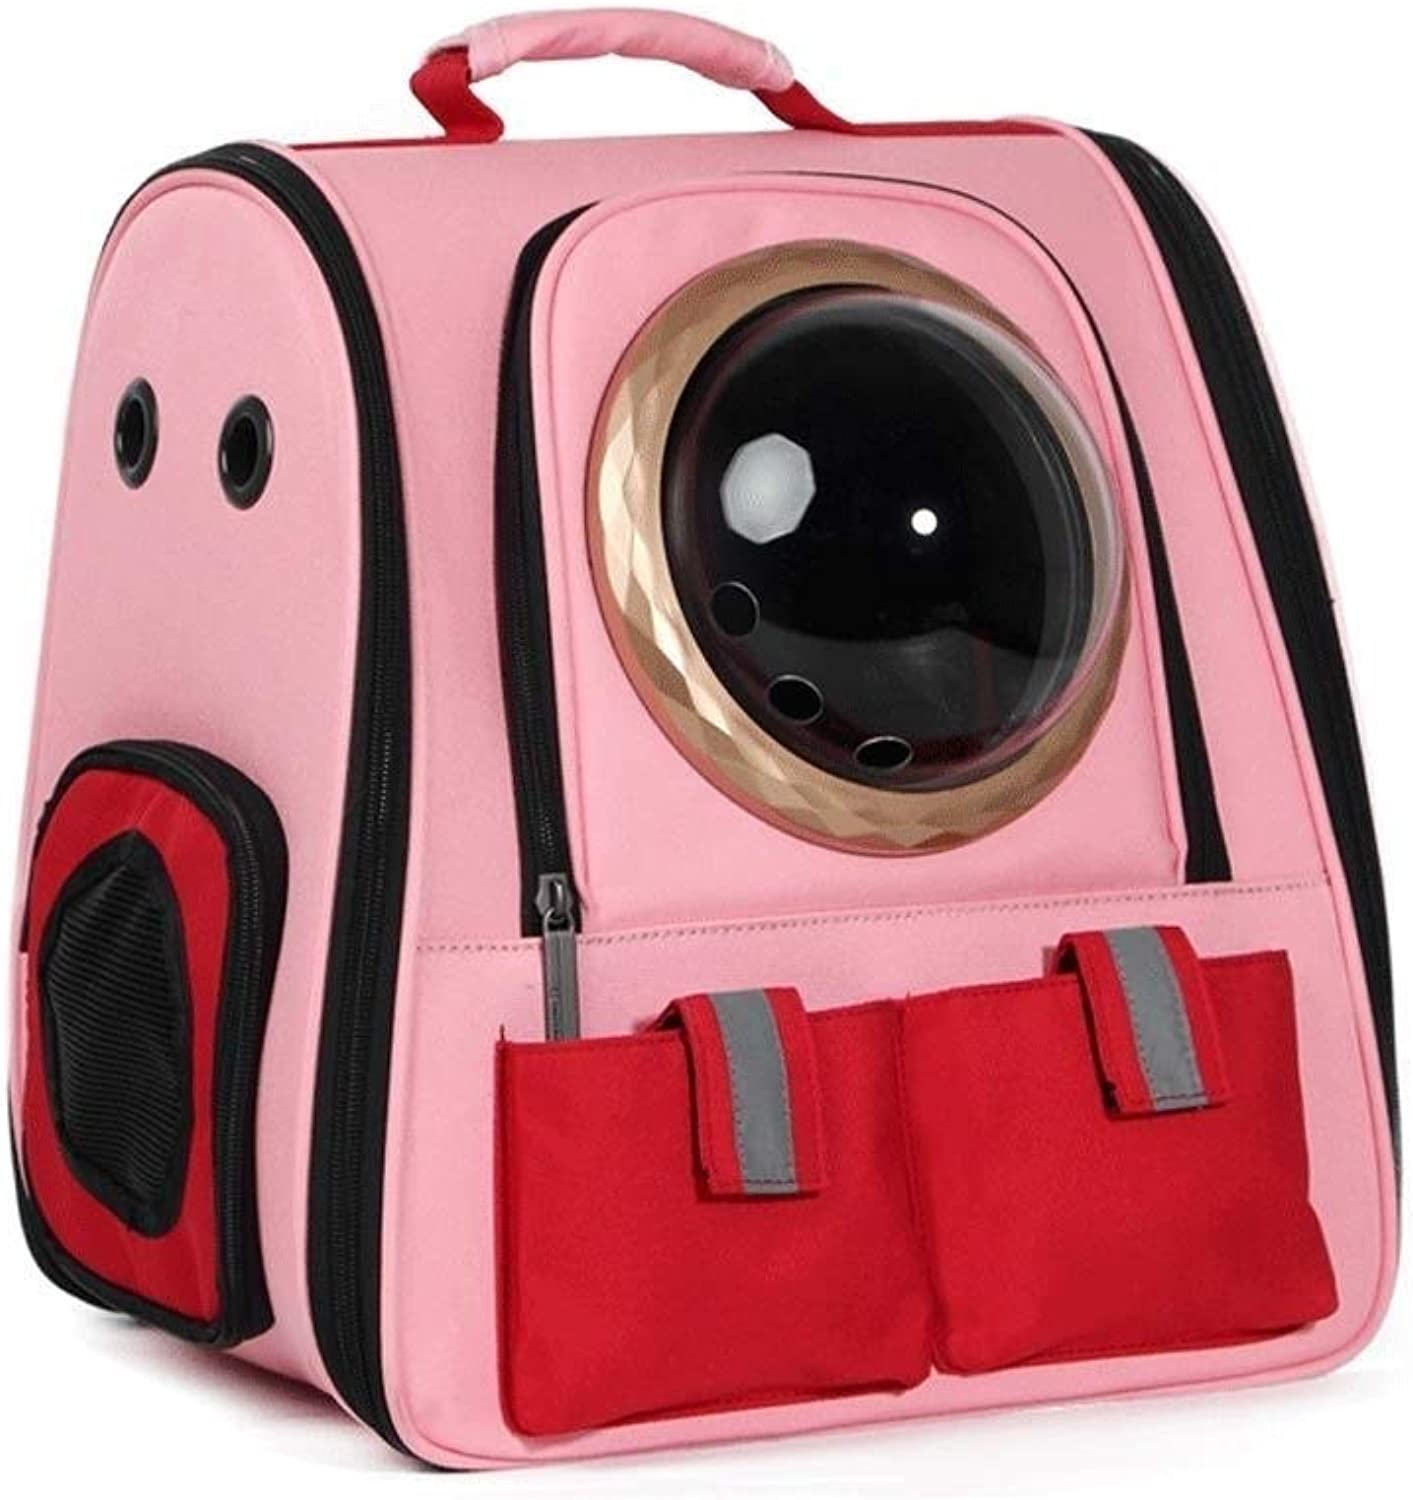 LEOO Pet Carrier Backpack for Small Cats and Dogs, Puppies   Ventilated Design, Safety Features and Cushion Back Support   for Travel, Hiking, Outdoor Use (color   PinkA)